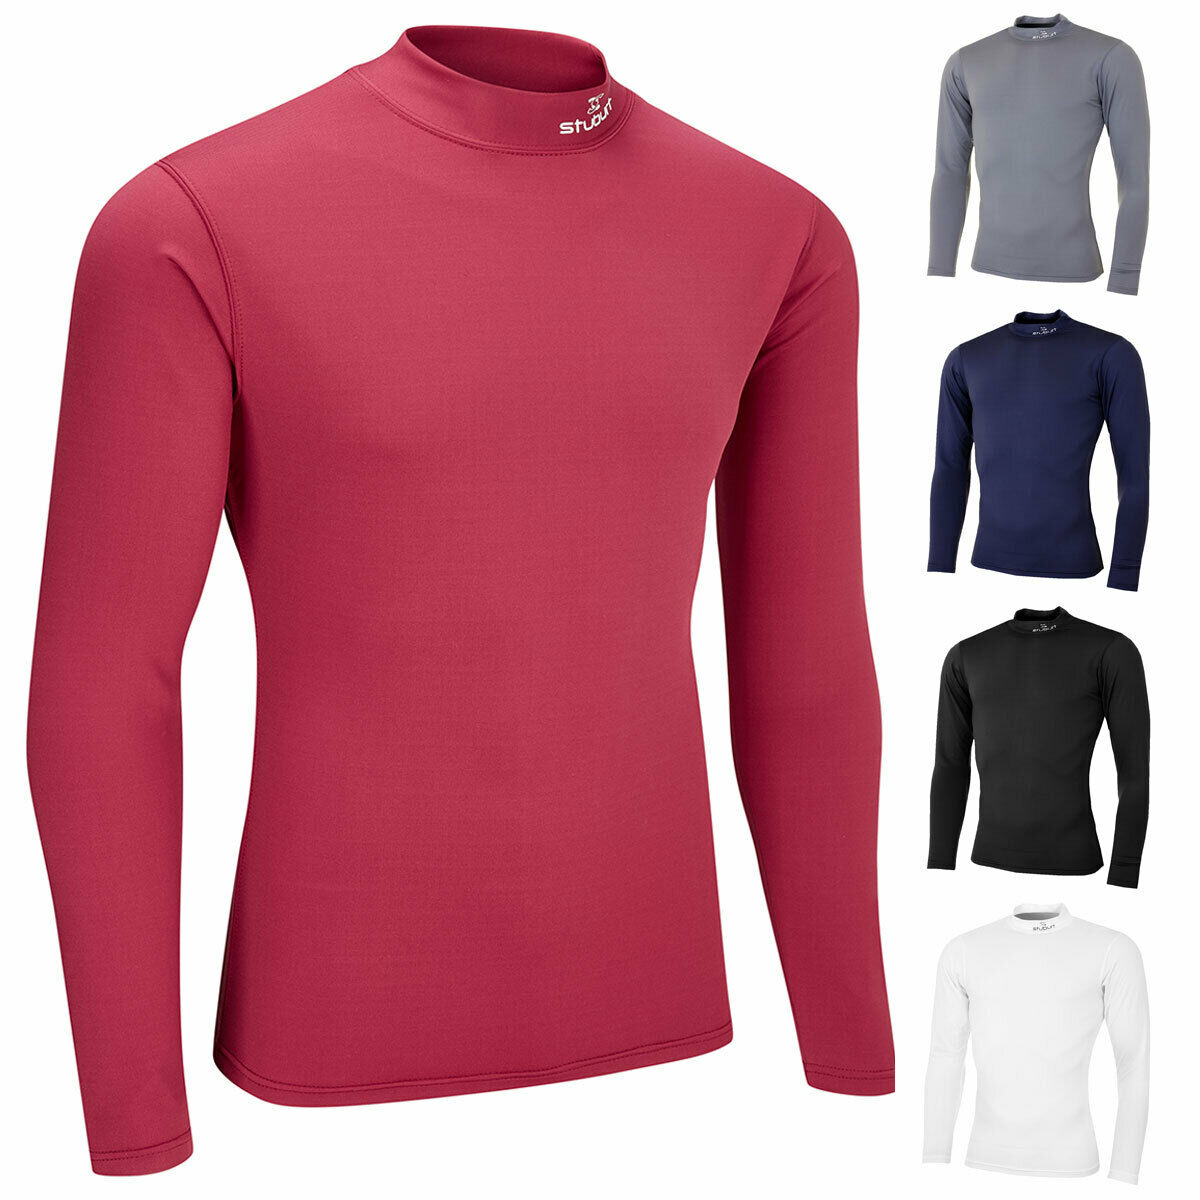 Stuburt Urban Compression Fit Thermal Base Layer Camisa Hombre